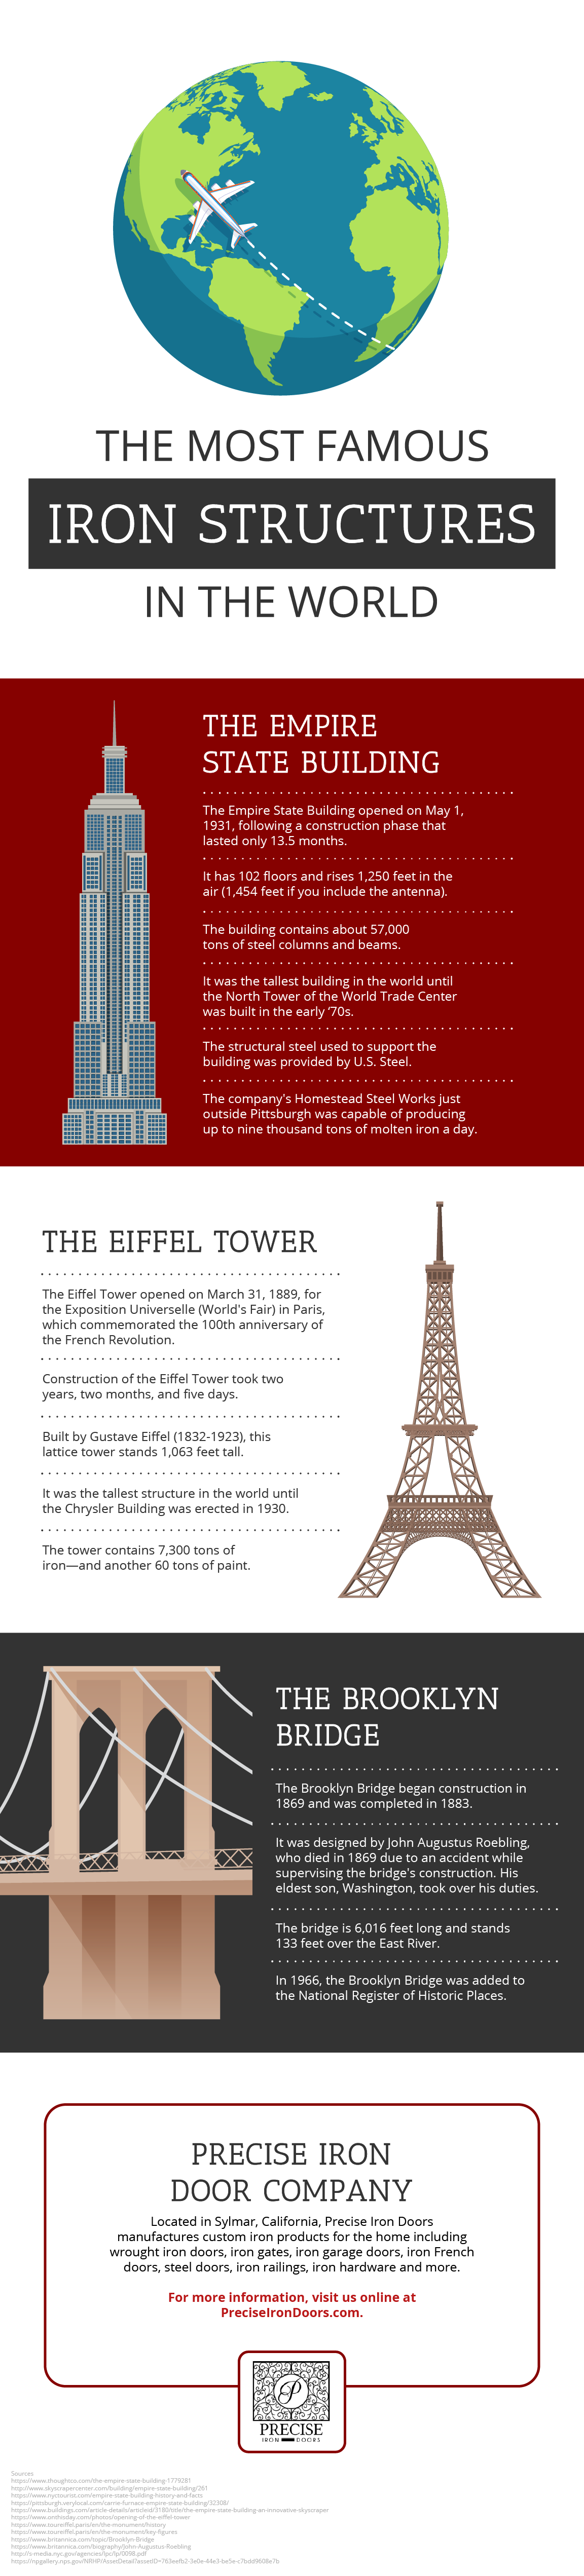 Most Famous Iron Structures in the World Infographic